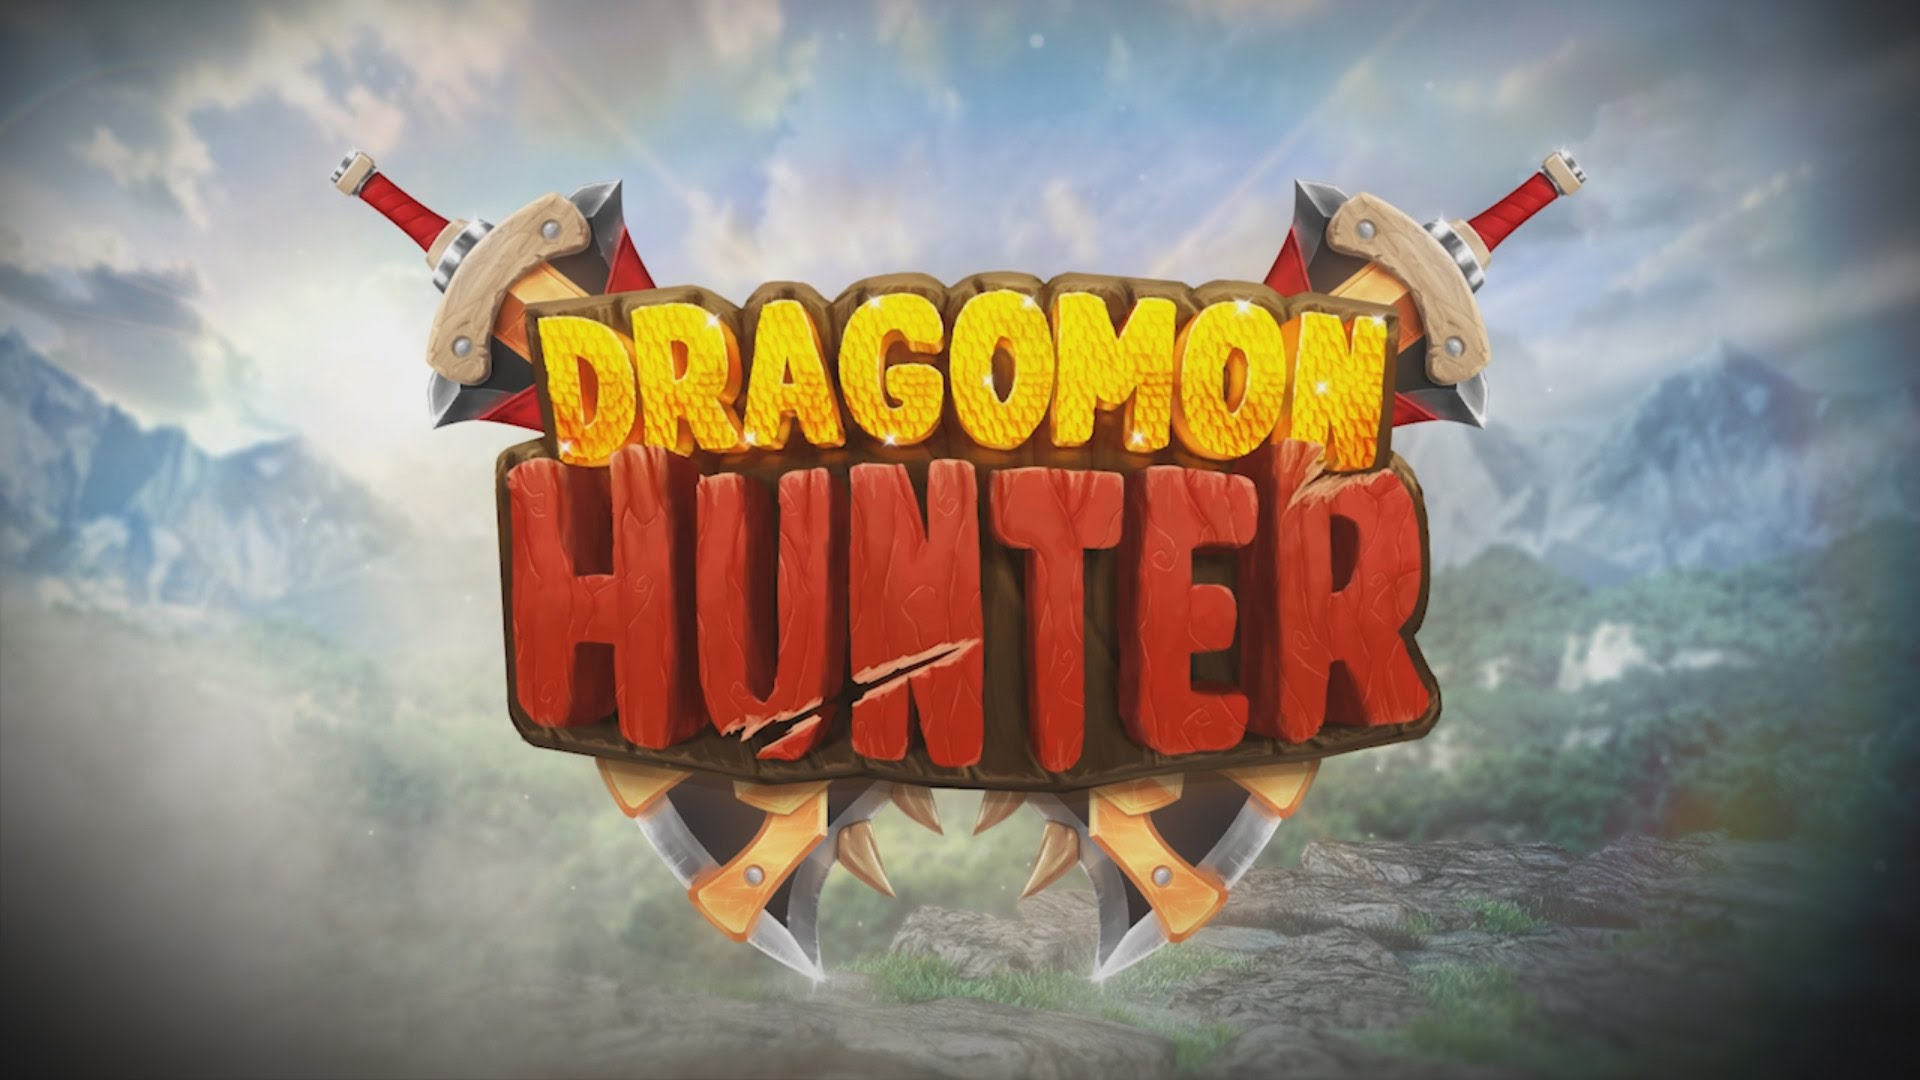 dragomon hunter closed beta key .jpg